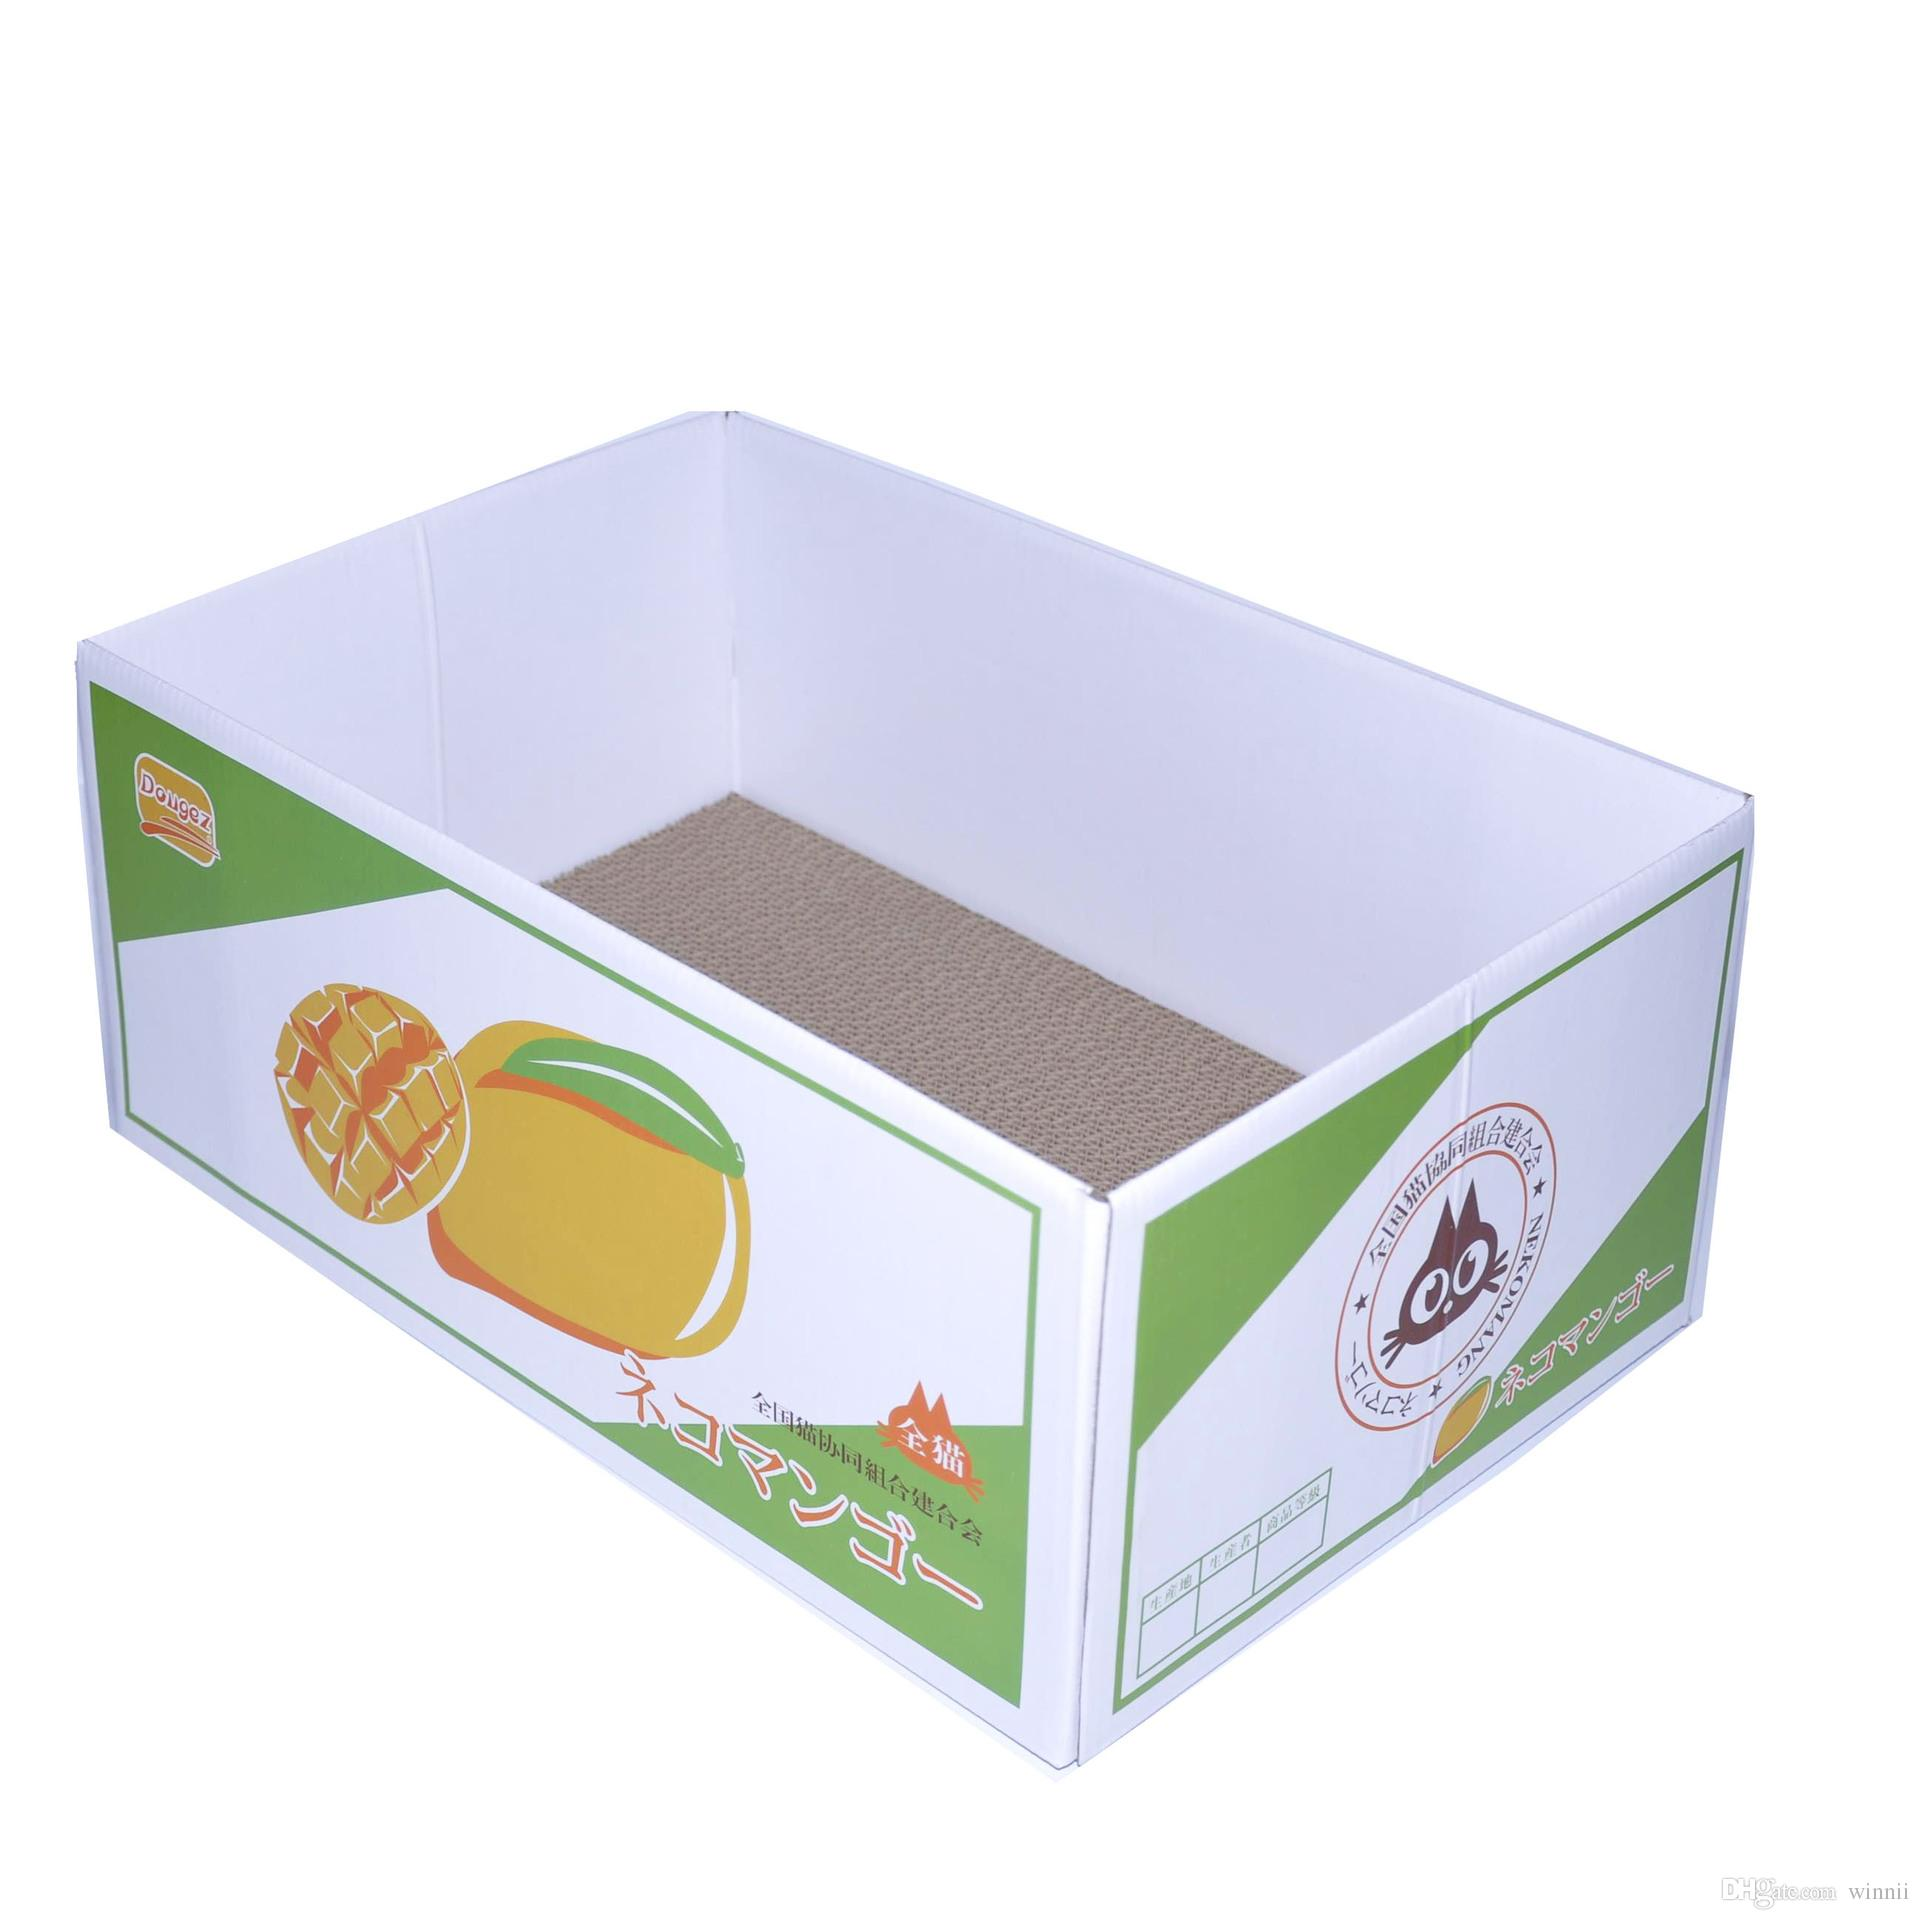 Cute Corrugated Cat Nest Paper Box Scratch Sofa House Portable Pet Cat Bed Litter Toy for Grinding Board